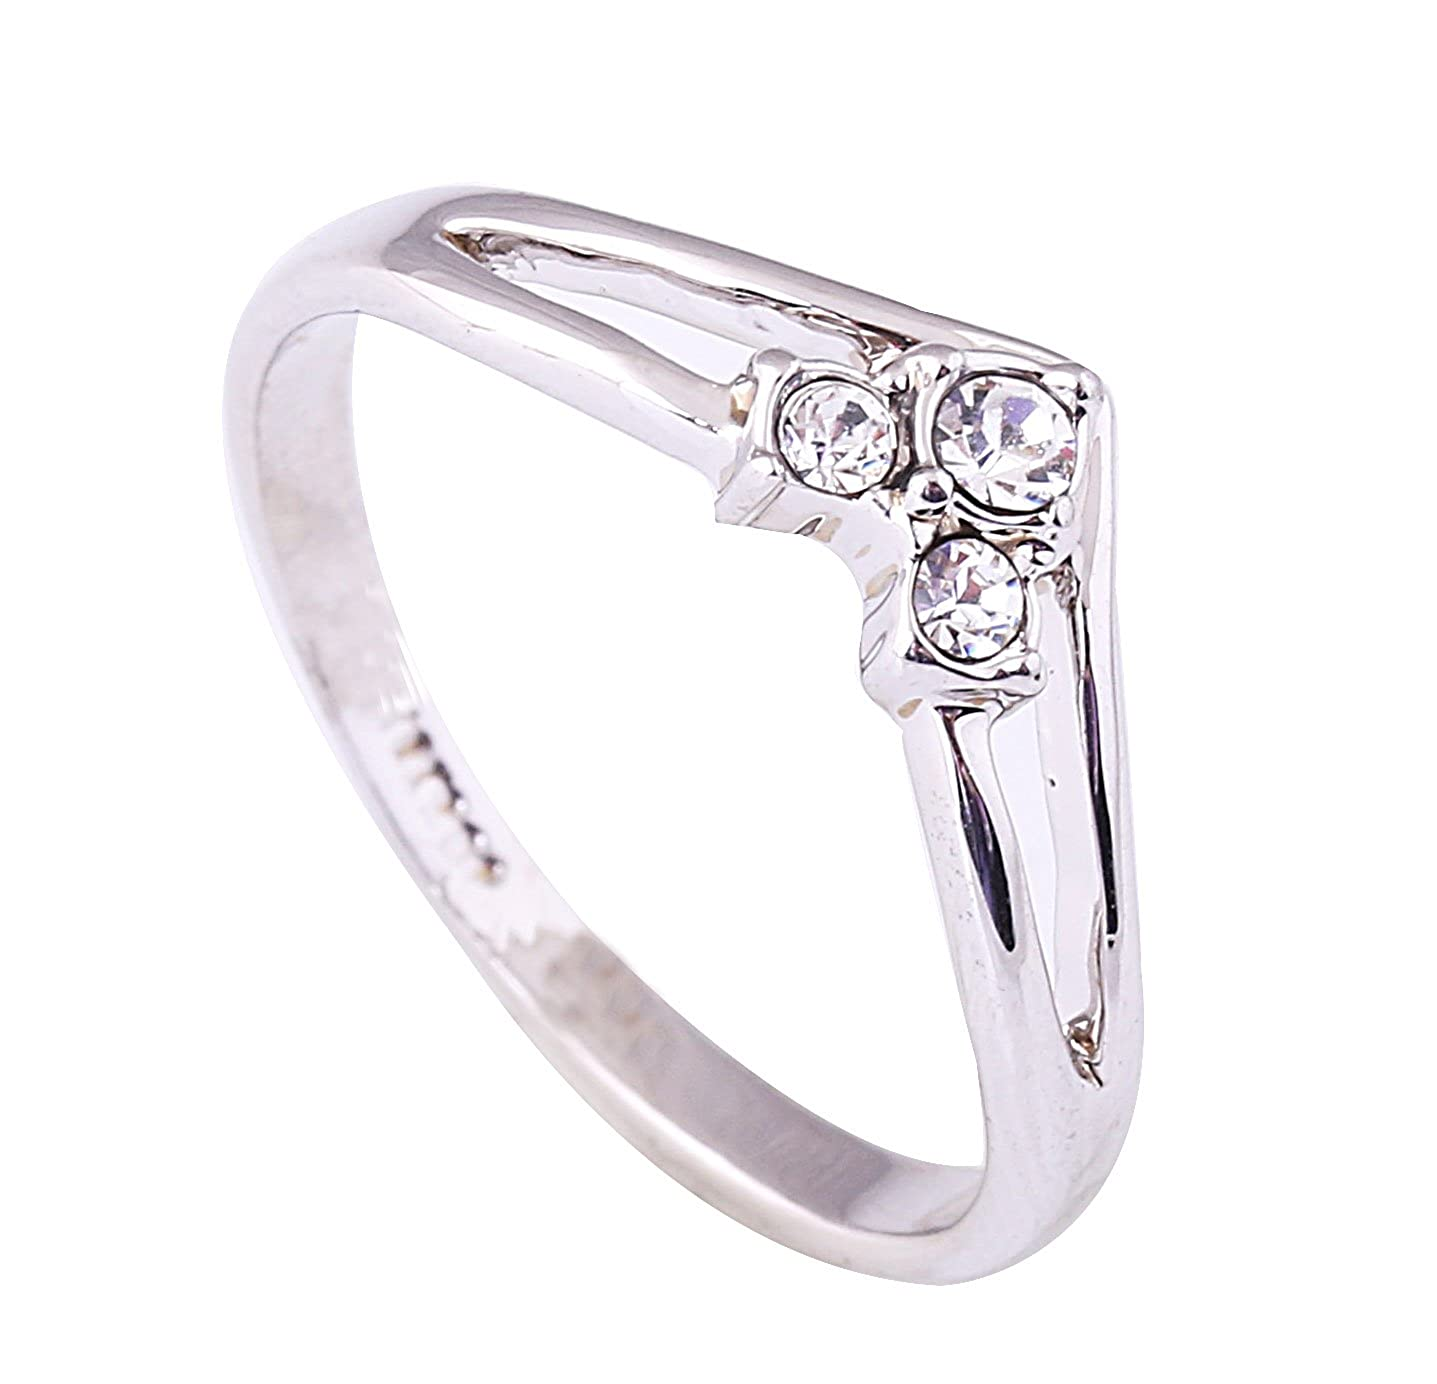 Acefeel 18K White Gold Plated Inlaid Austrian Drilling V Shape Promise Engagement Wedding Ring R036